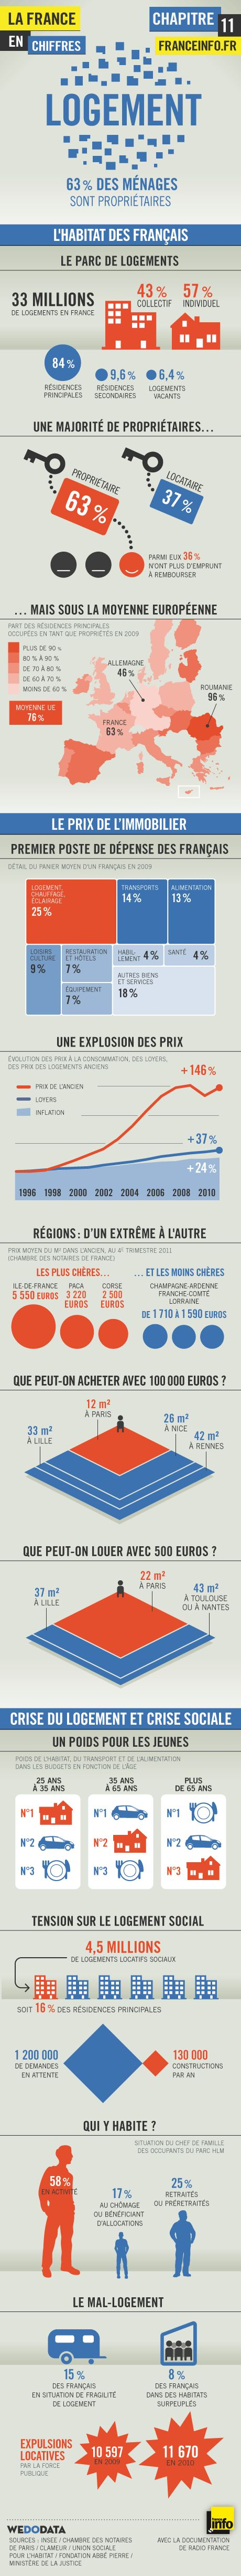 Logement en France / infographic by WeDoData